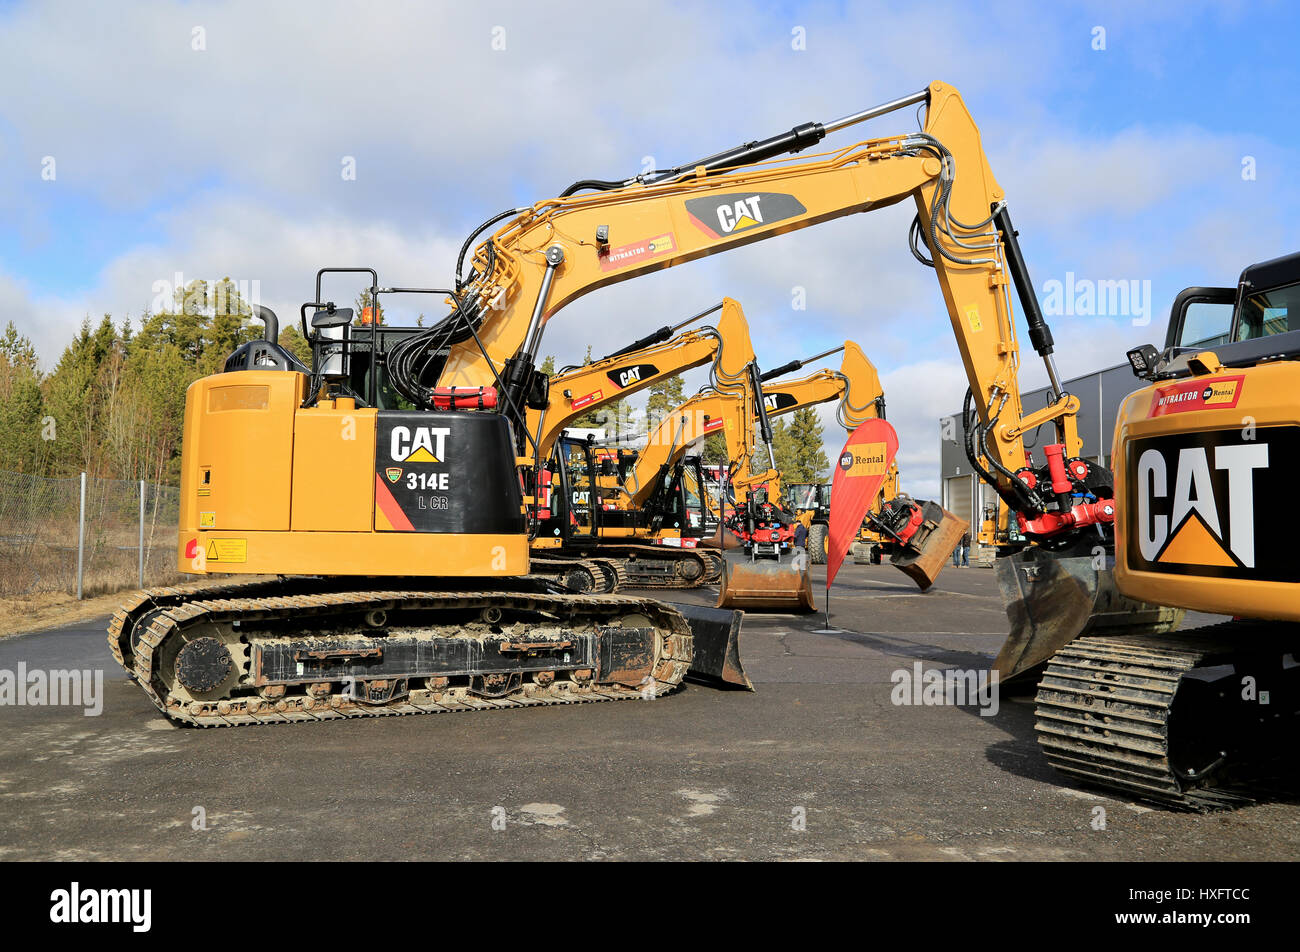 LIETO, FINLAND - MARCH 25, 2017: 314E L CR excavator along with other Cat construction equipment seen at the public - Stock Image